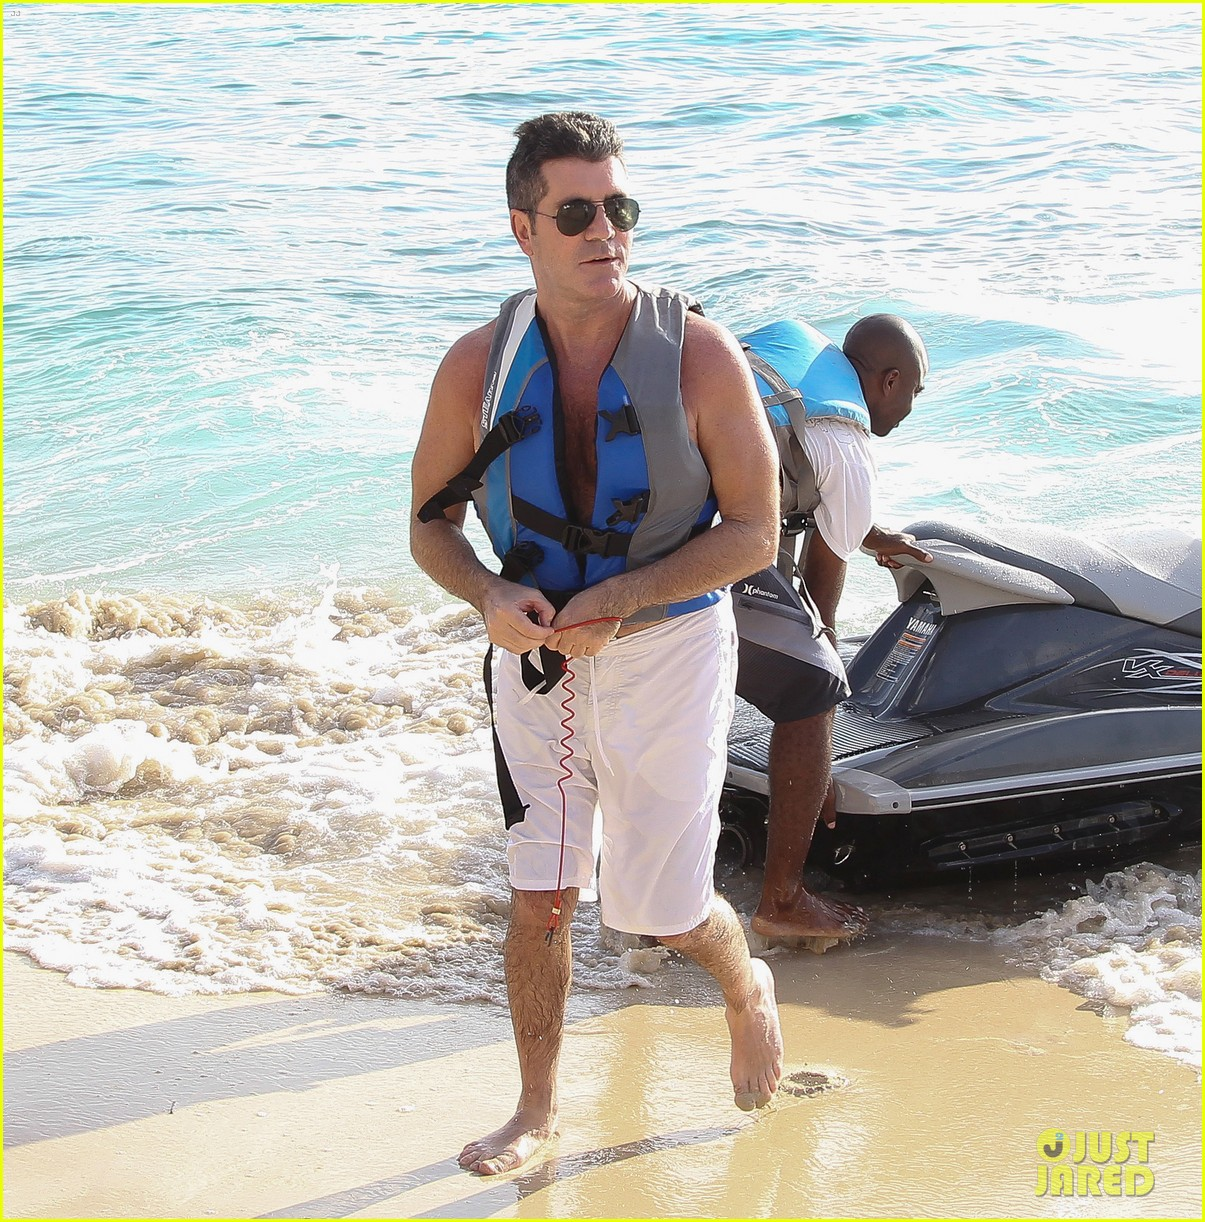 shirtless simon cowell draws large female crowd at the beach 173021948